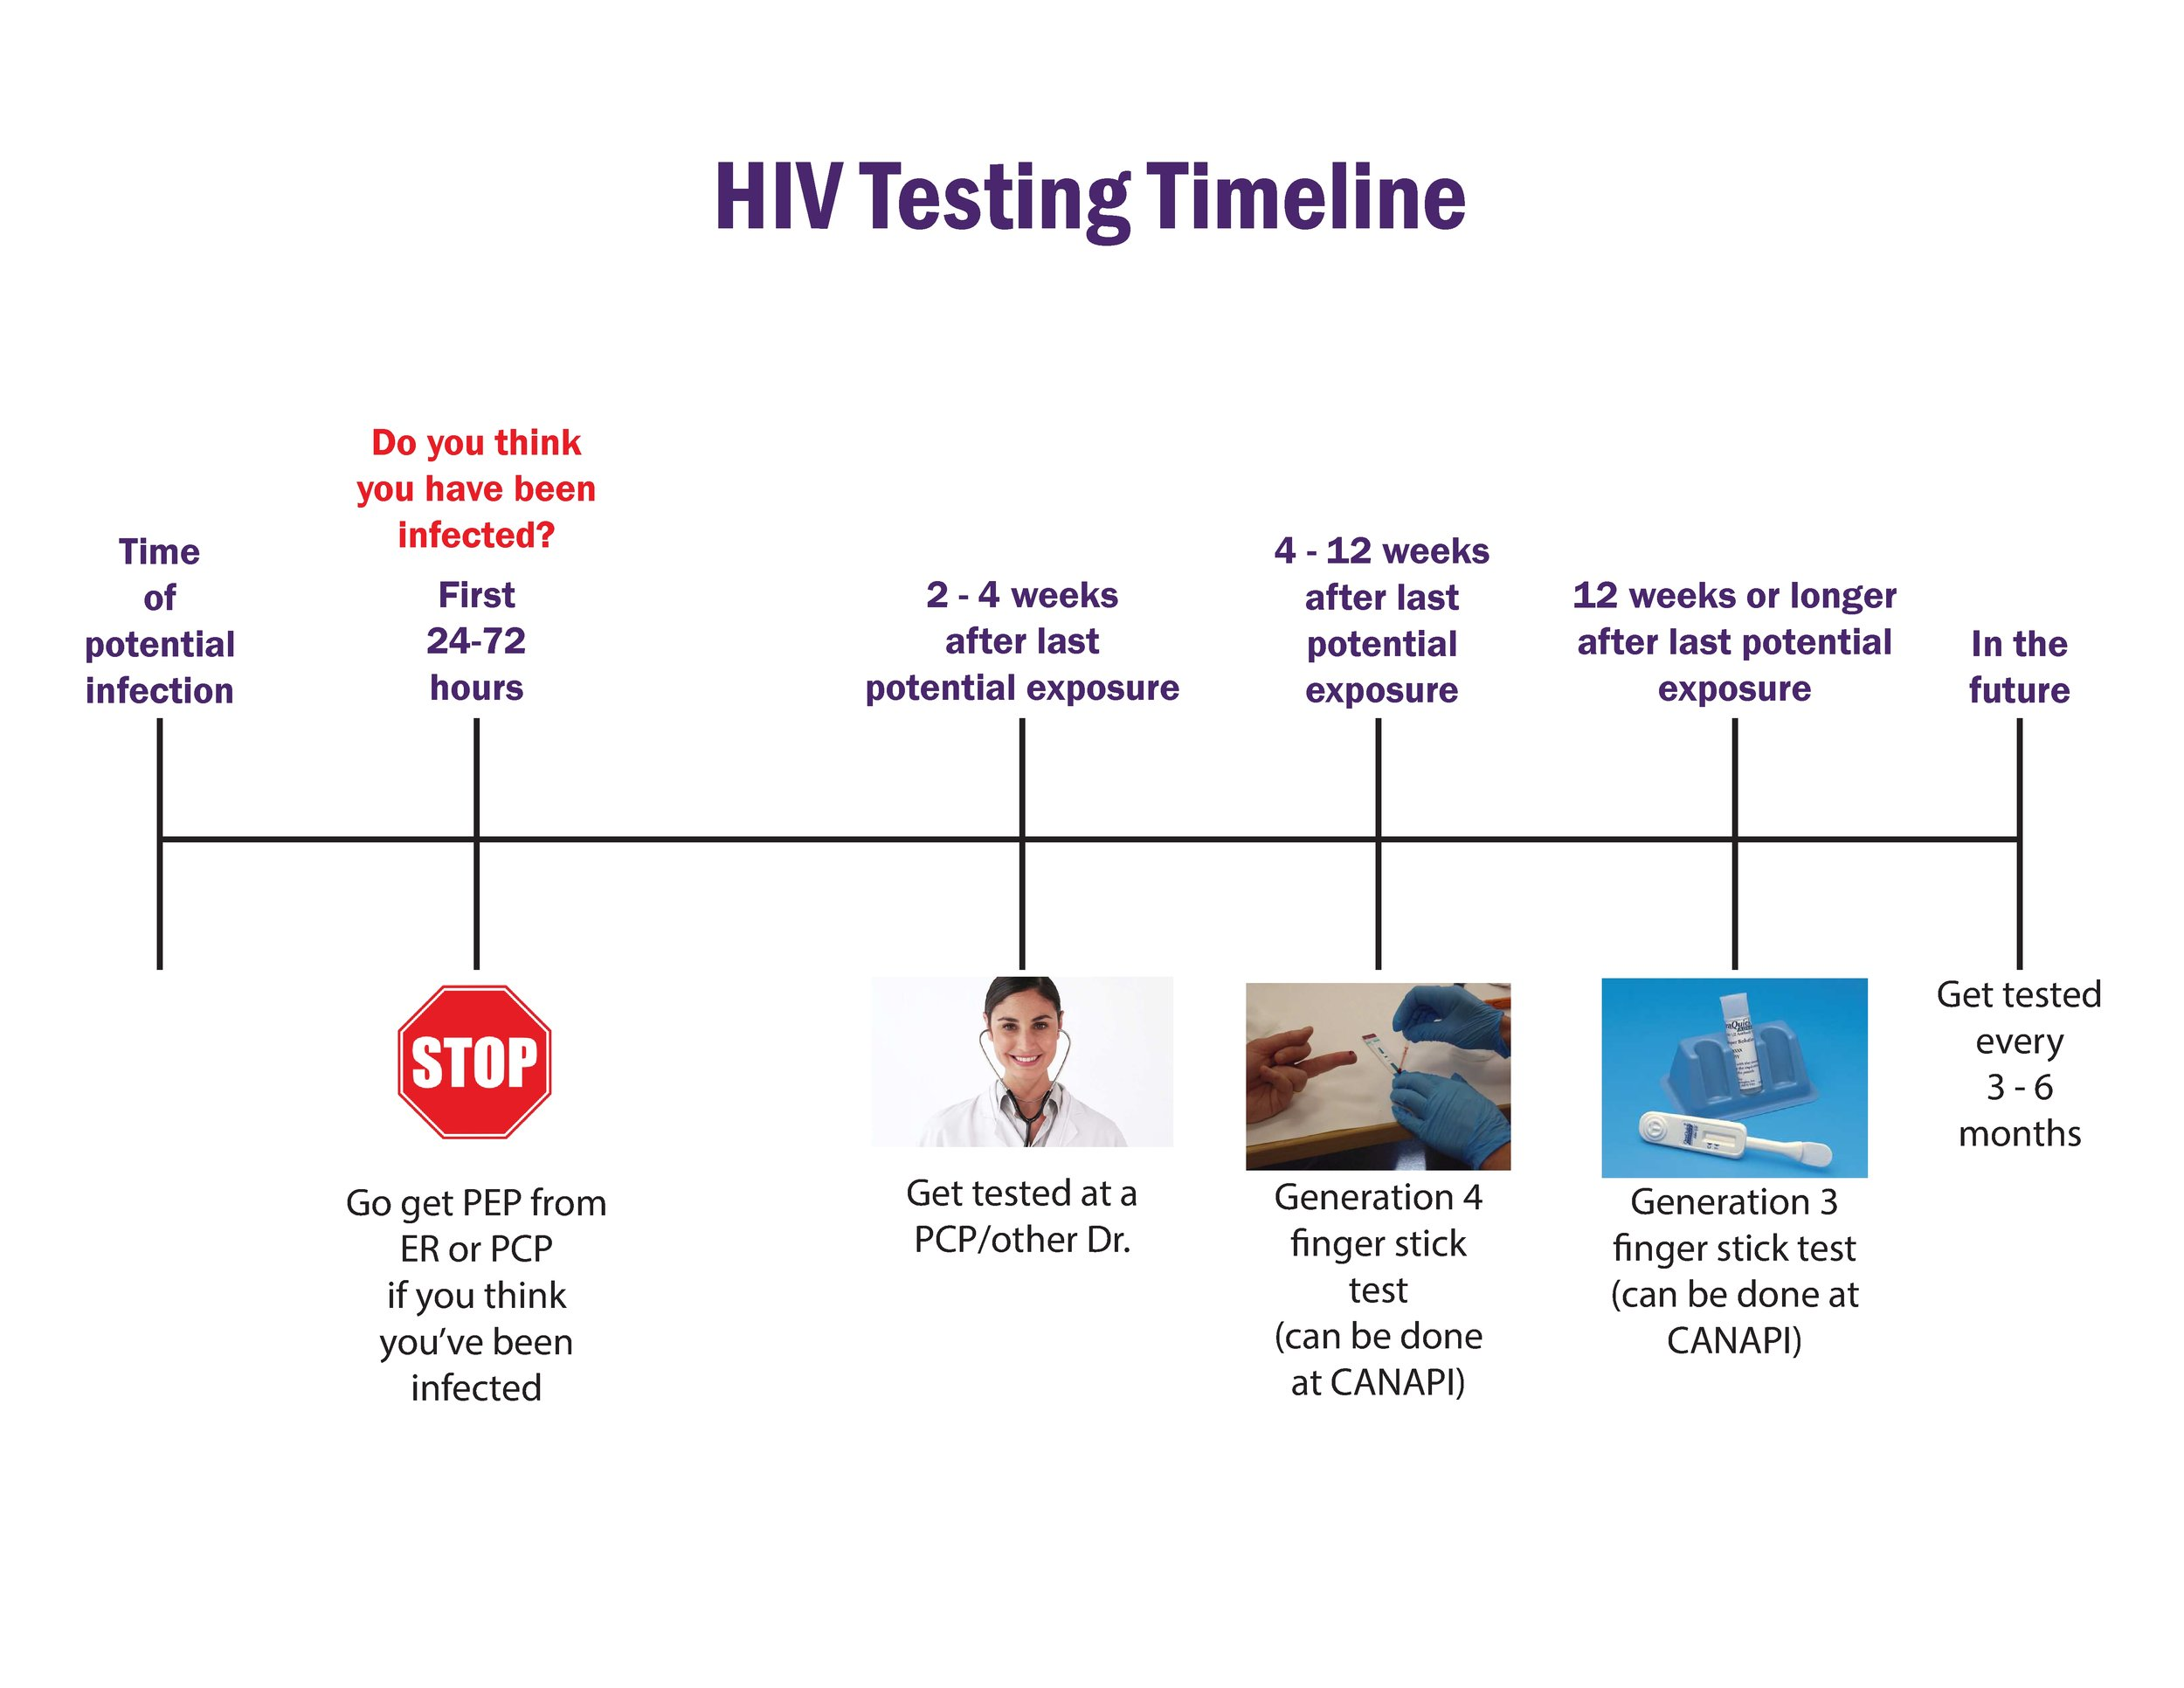 HIV Prevention — CANAPI